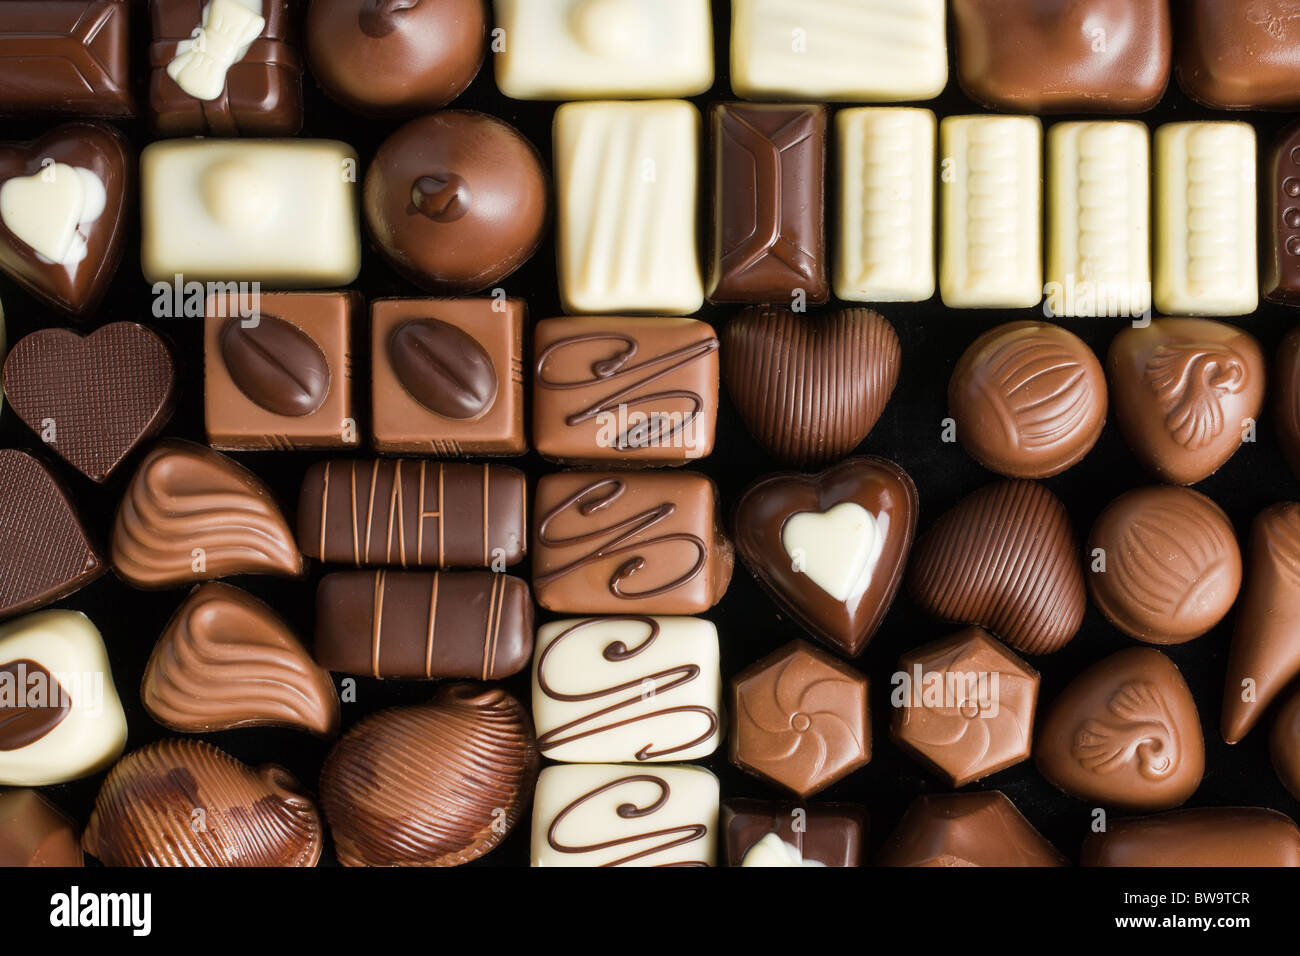 Chocolat pralines divers Photo Stock